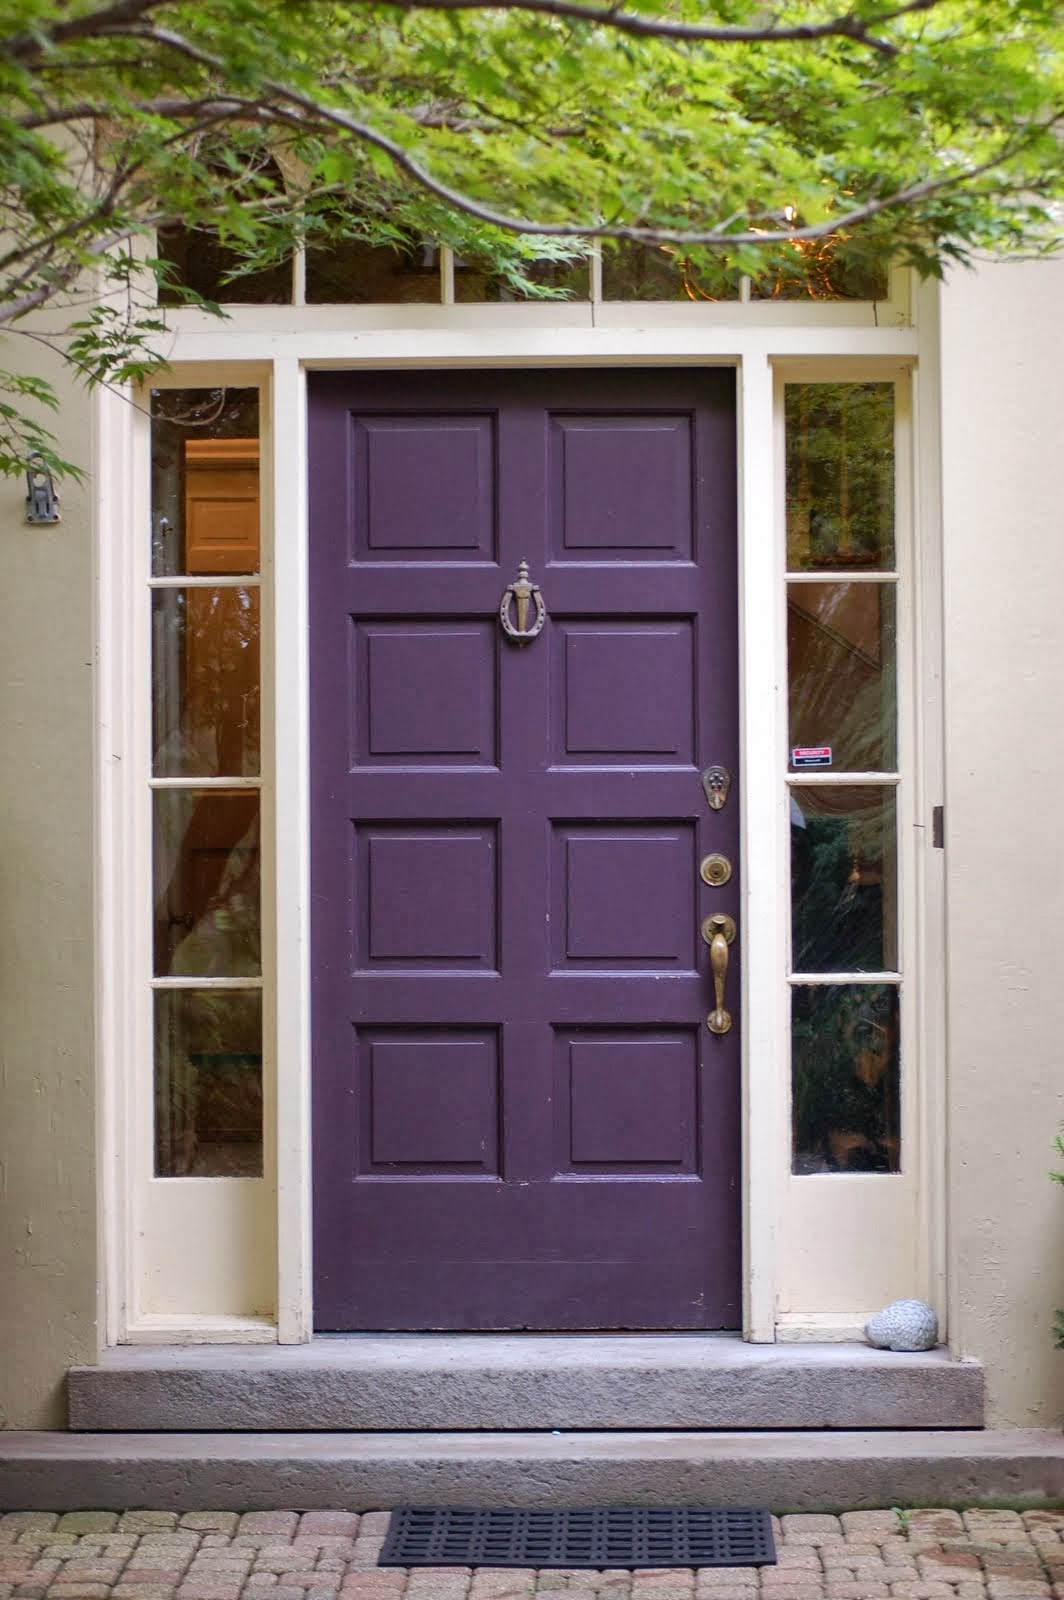 1600 #889B30 Decorating With Color Front Door Color Ideas wallpaper Purple Front Doors 47051064